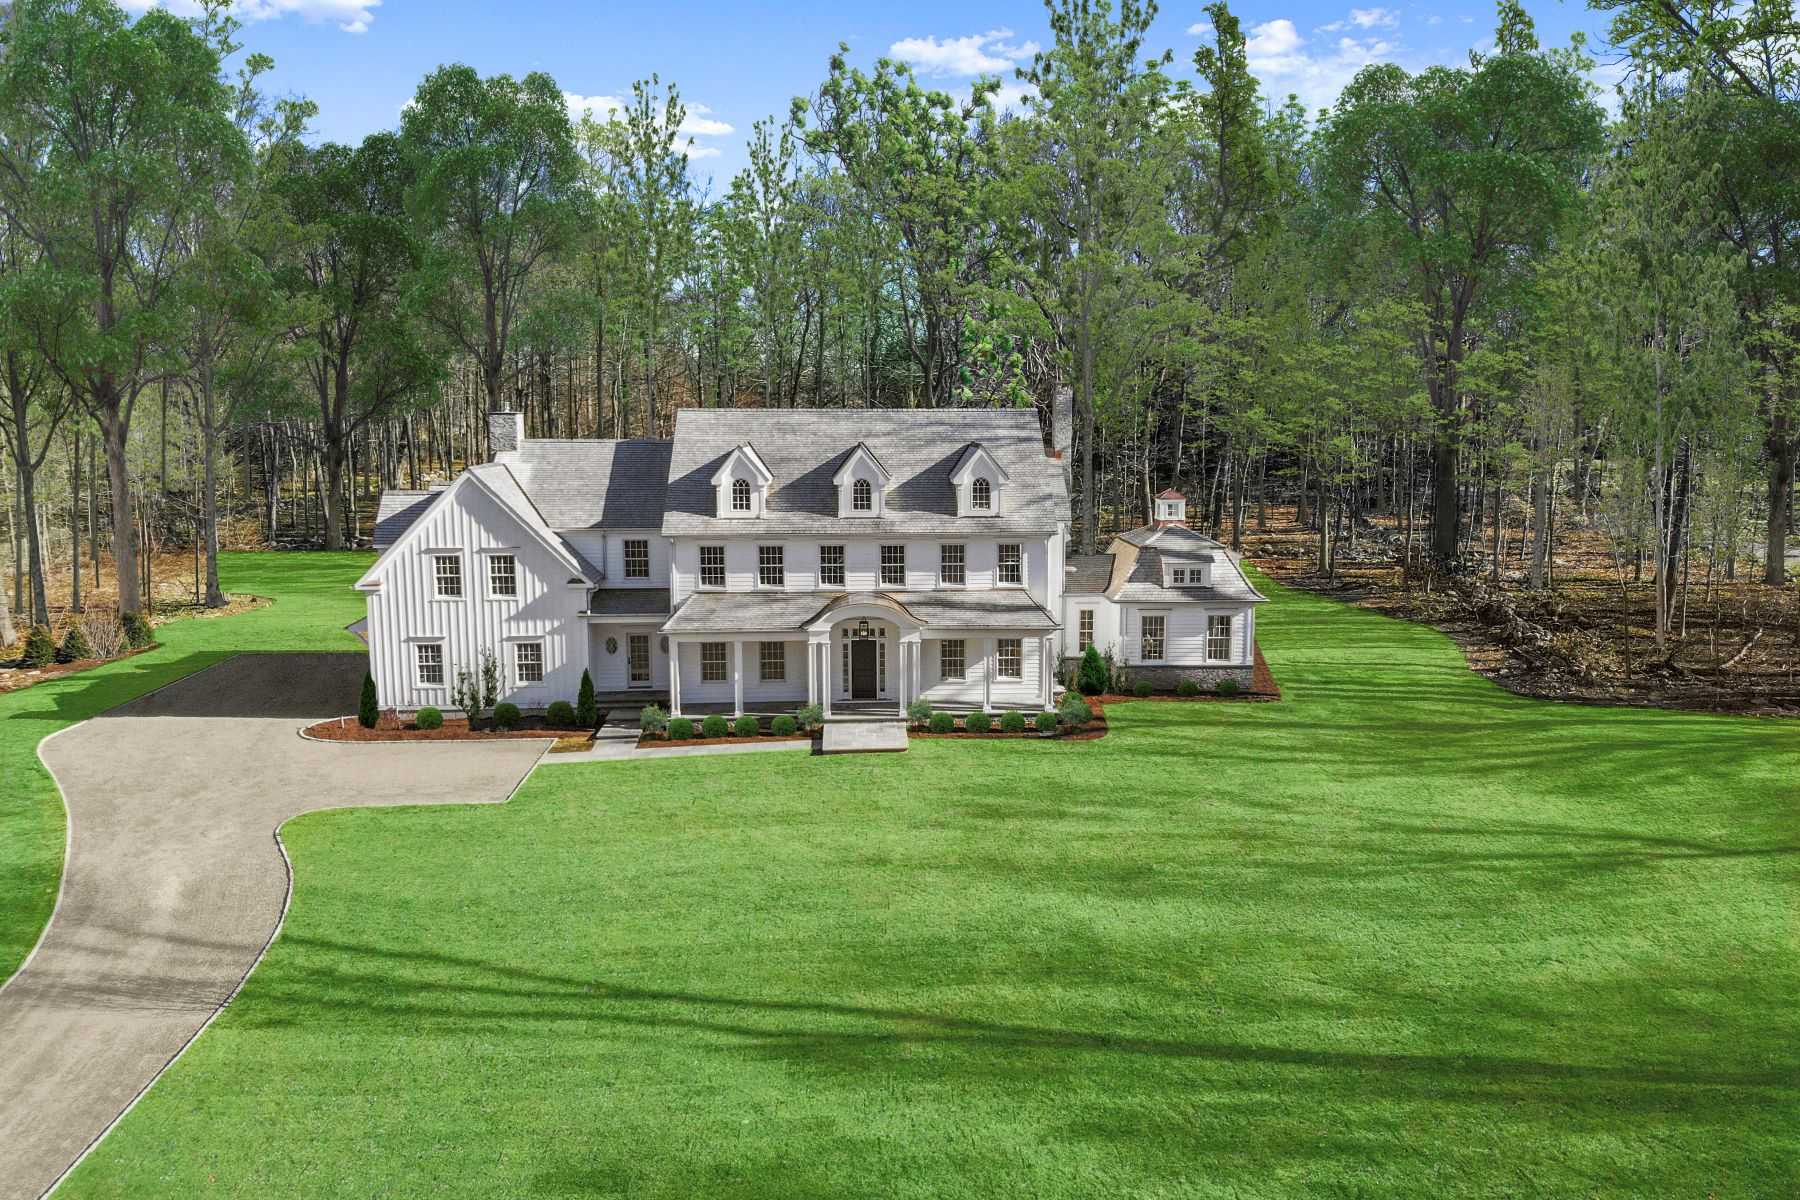 Single Family Homes for Sale at Darien, Connecticut 06820 United States